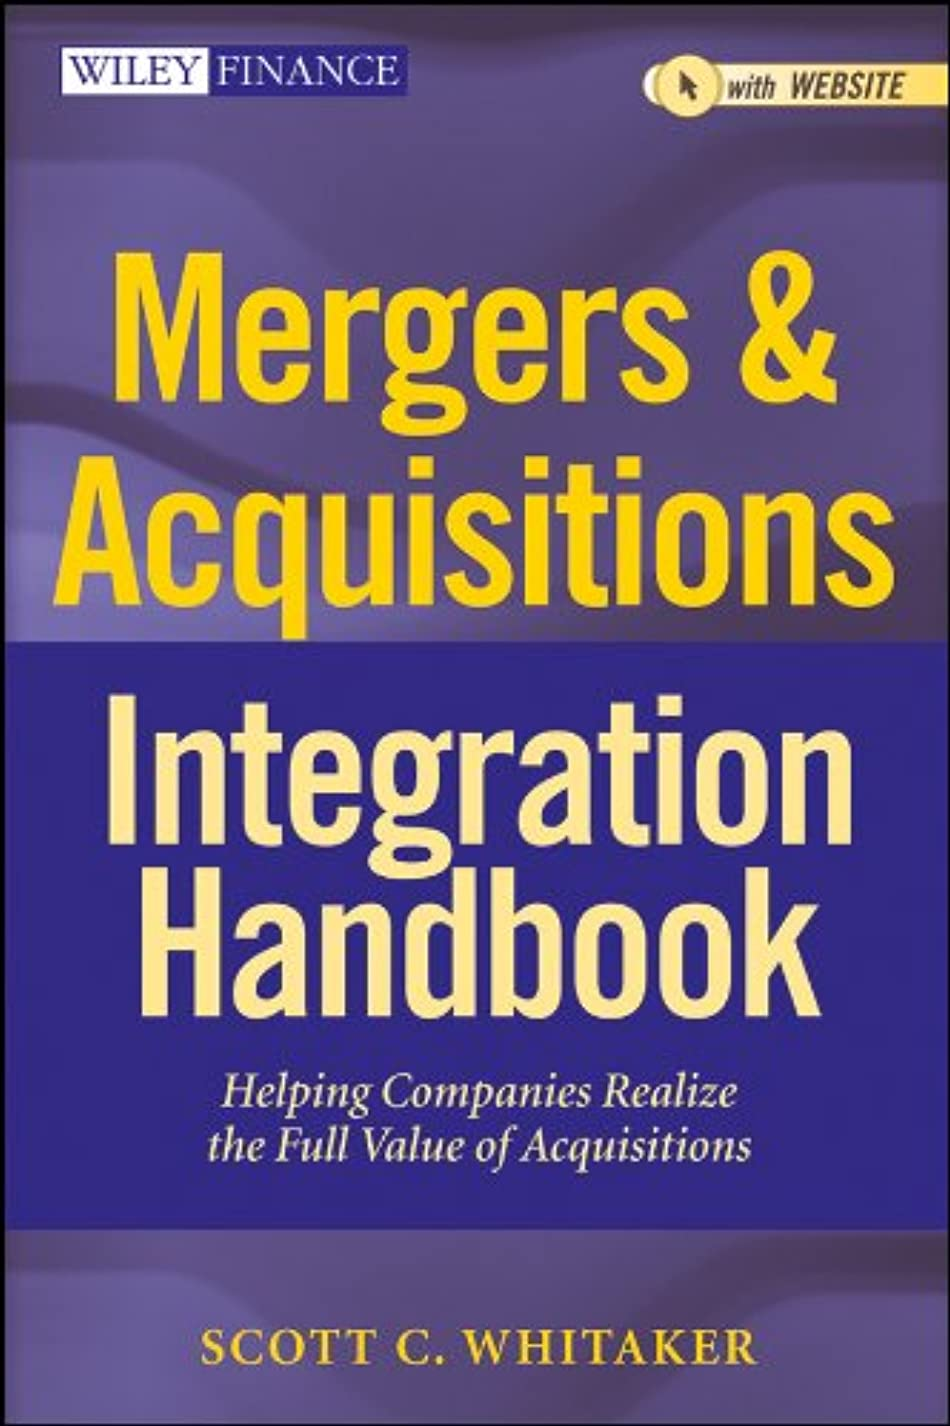 遠え彼の計算Mergers & Acquisitions Integration Handbook: Helping Companies Realize The Full Value of Acquisitions (Wiley Finance Book 657) (English Edition)